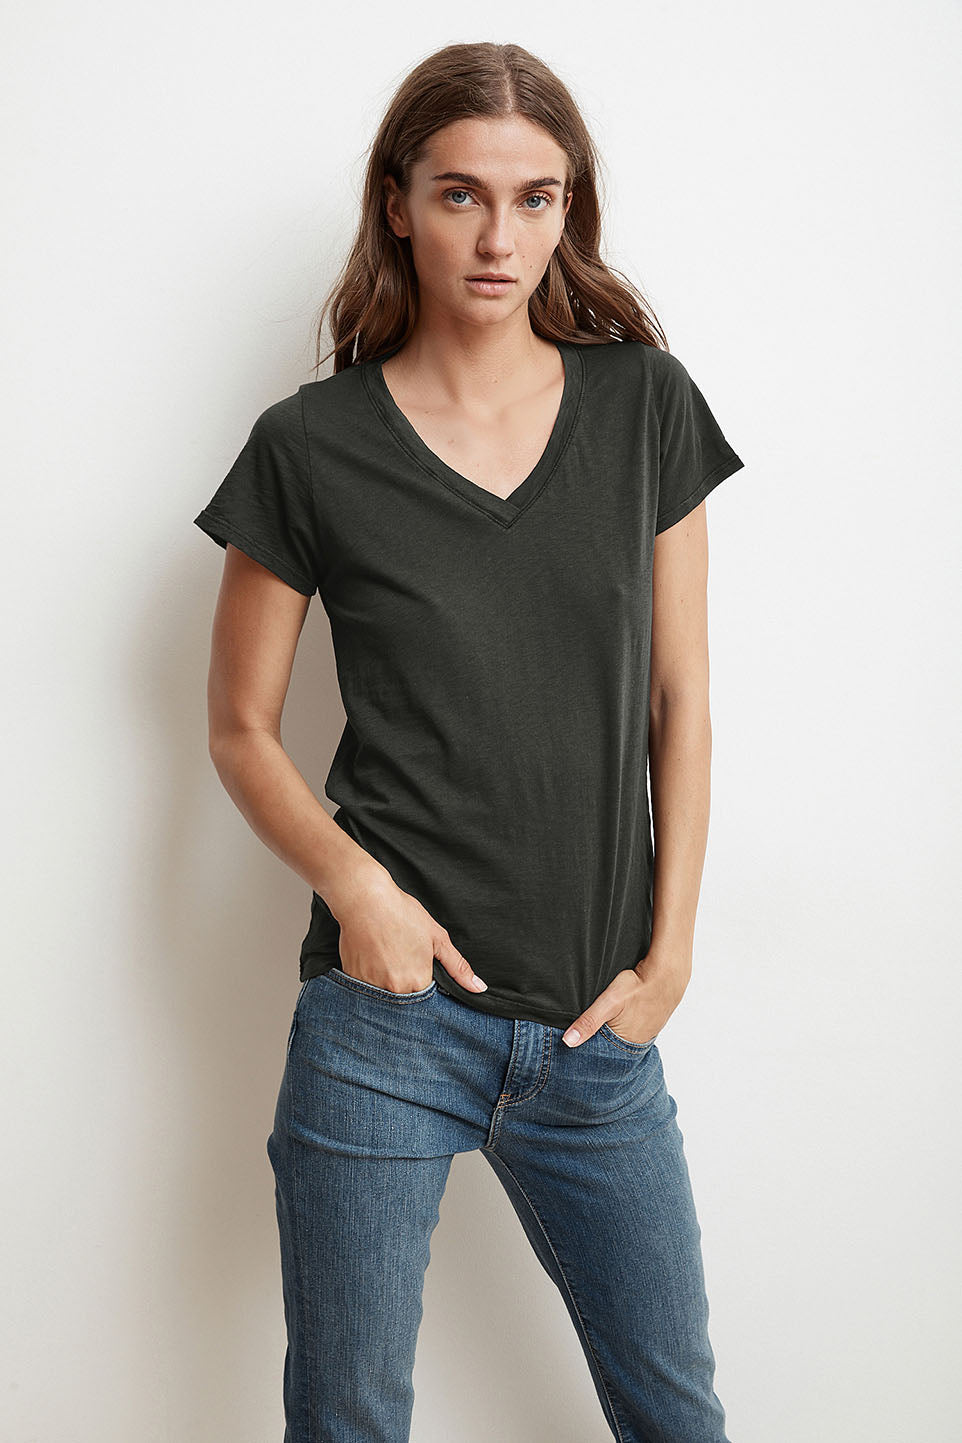 JILL CITY COTTON SLUB T-SHIRT IN CIRRUS